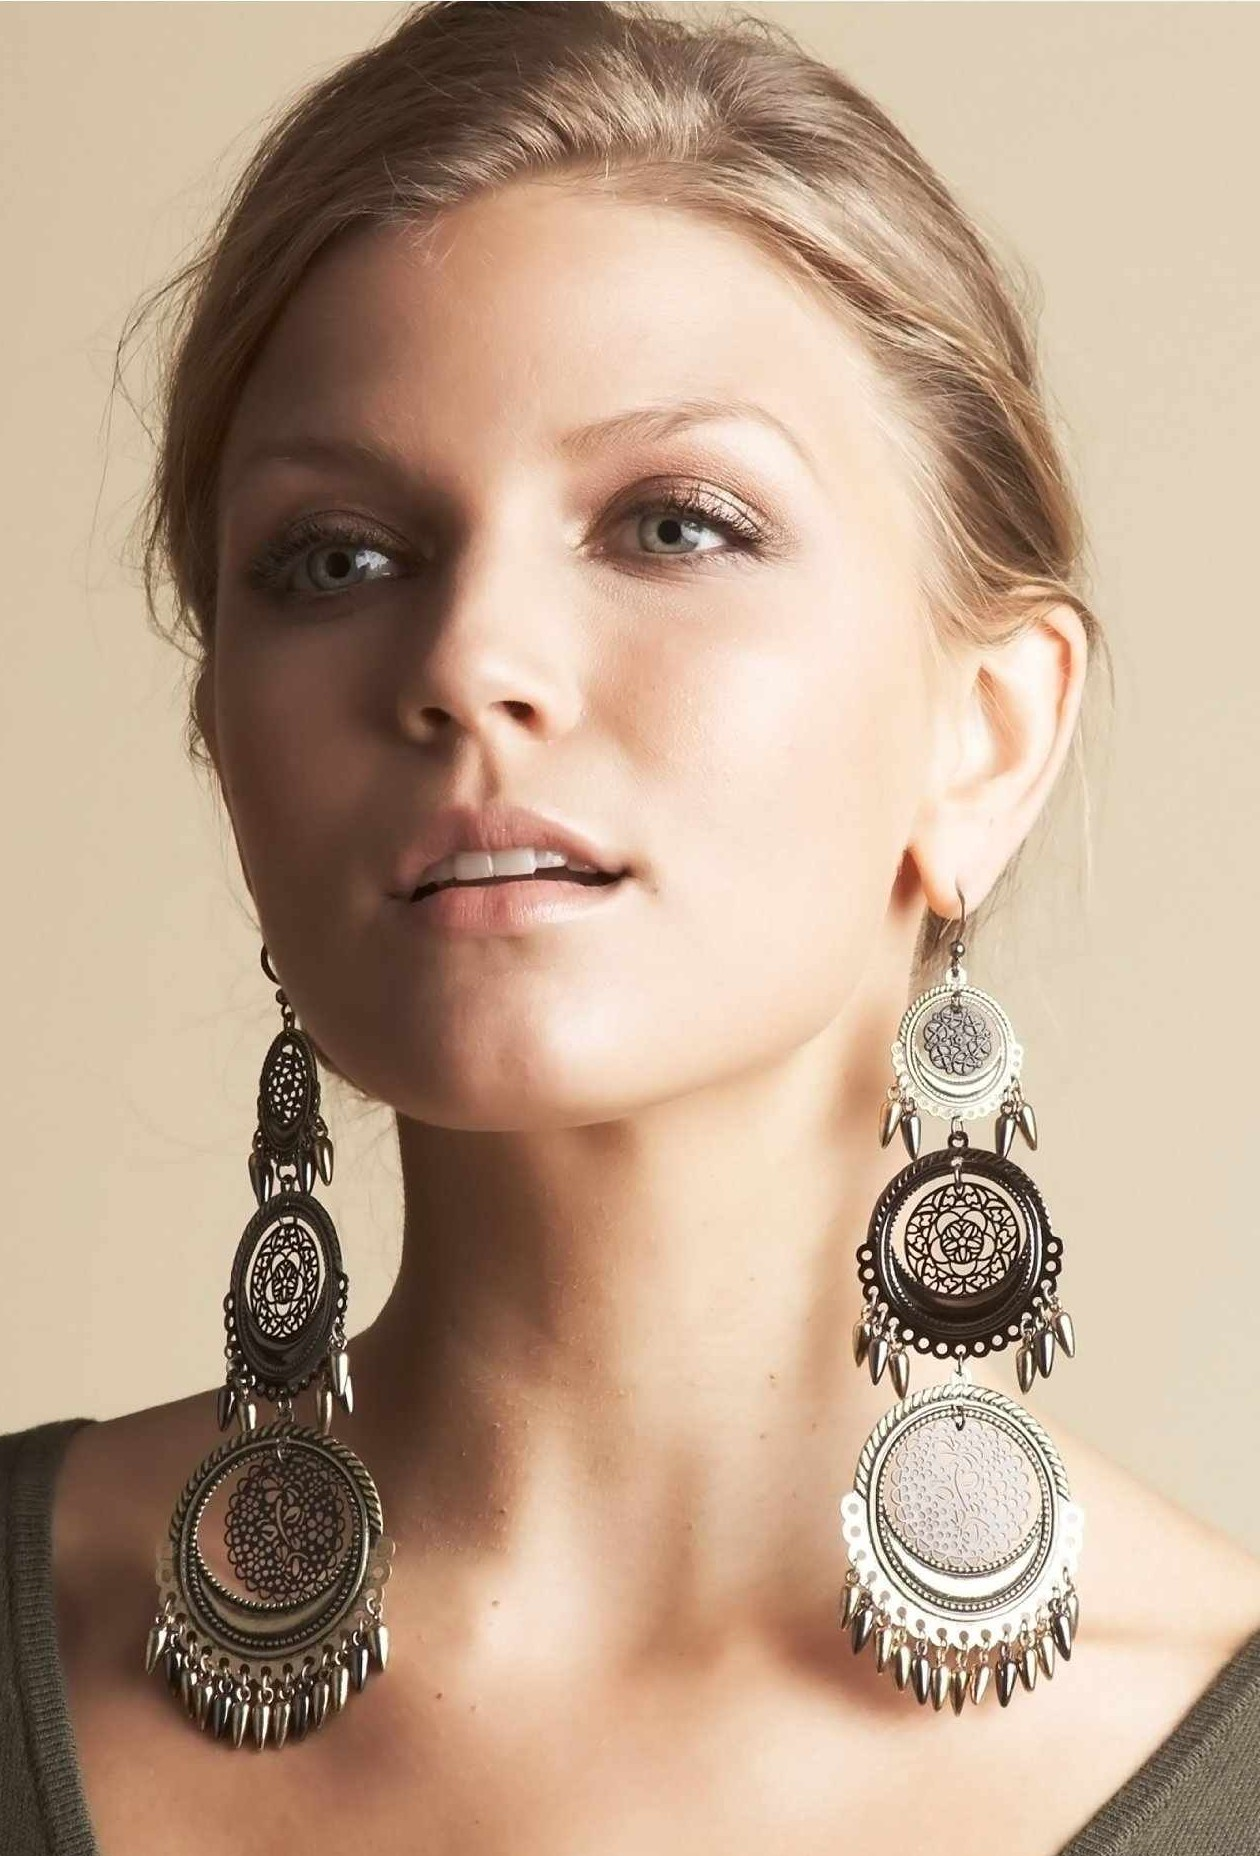 Kedii Celebrity Earrings - Jewelry/Watches - 115 Photos ...